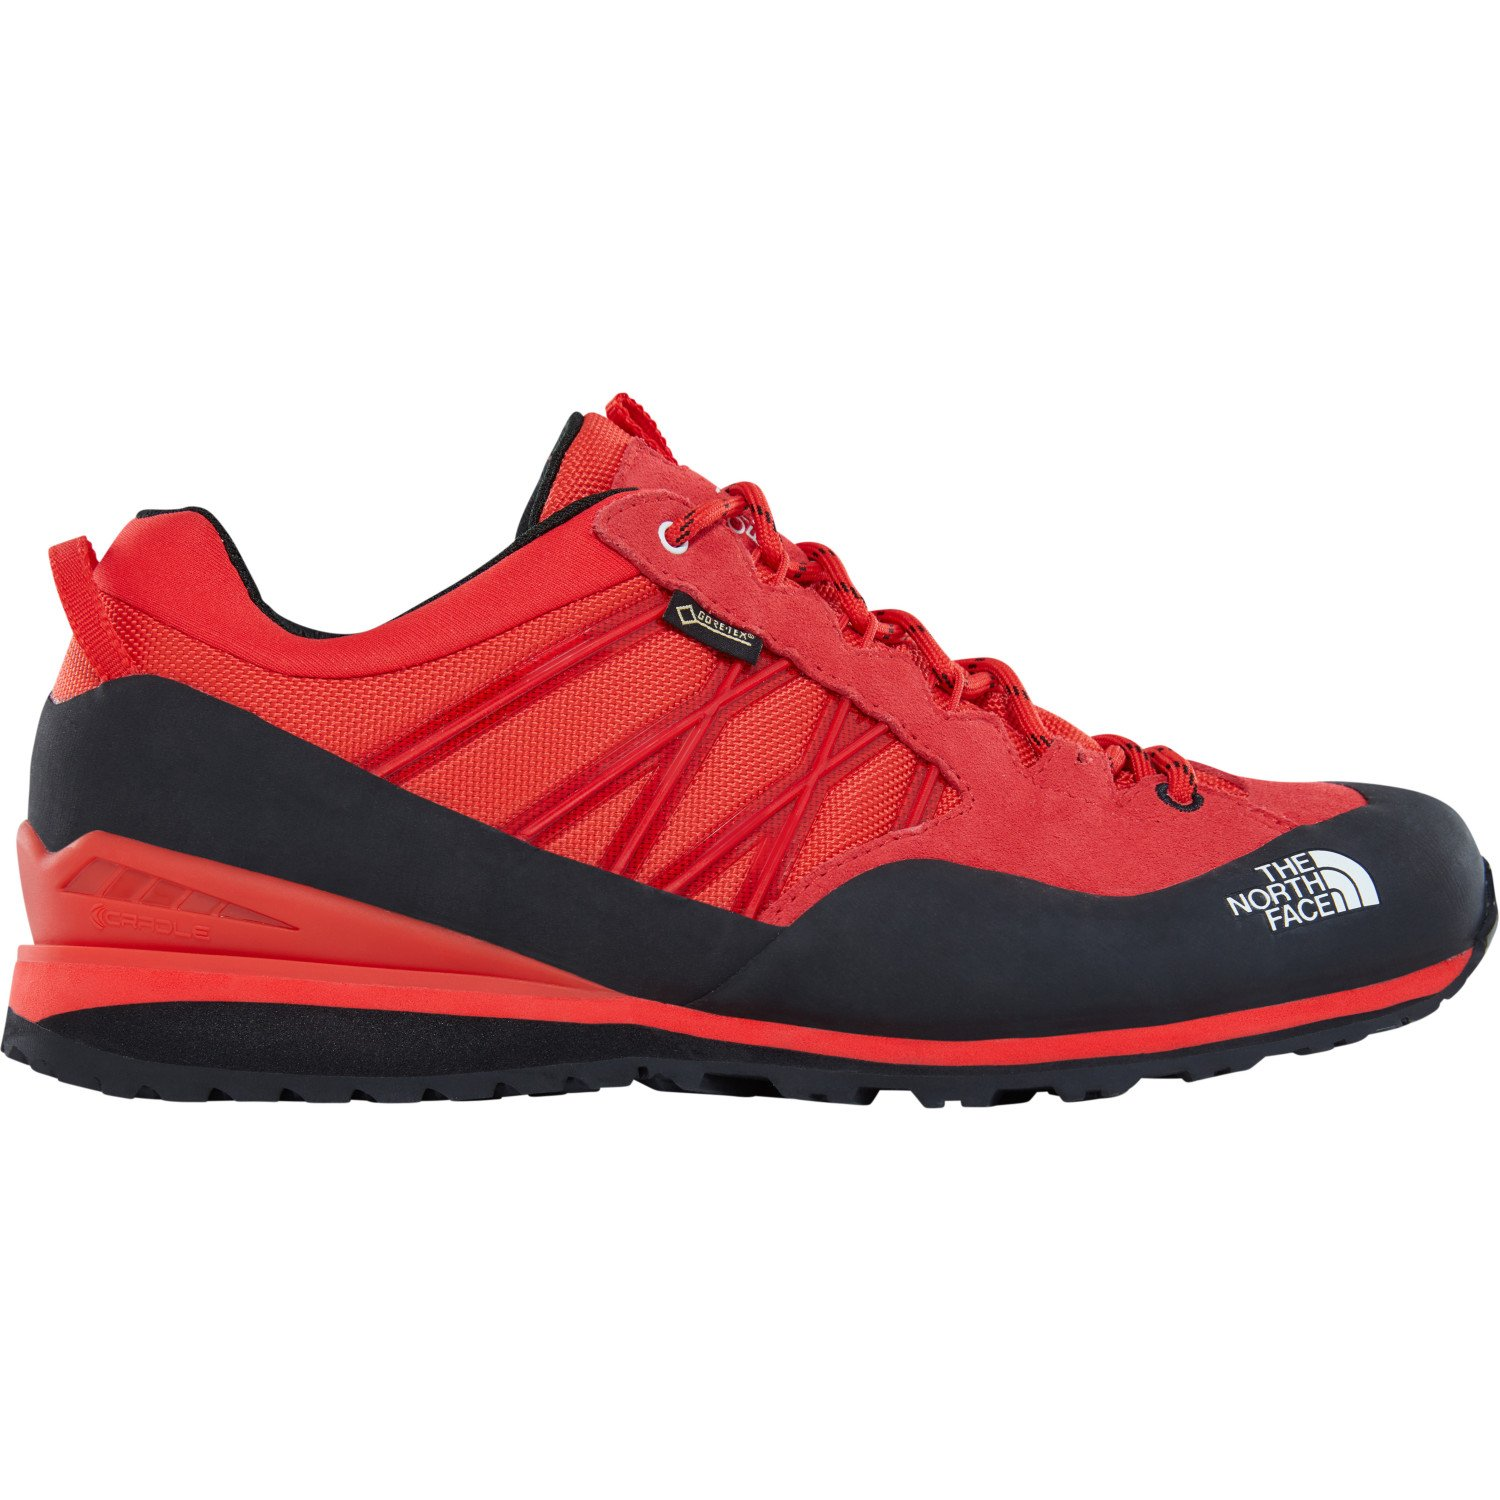 THE NORTH FACE Herren M Verto Plasma Ii GTX Wanderschuhe